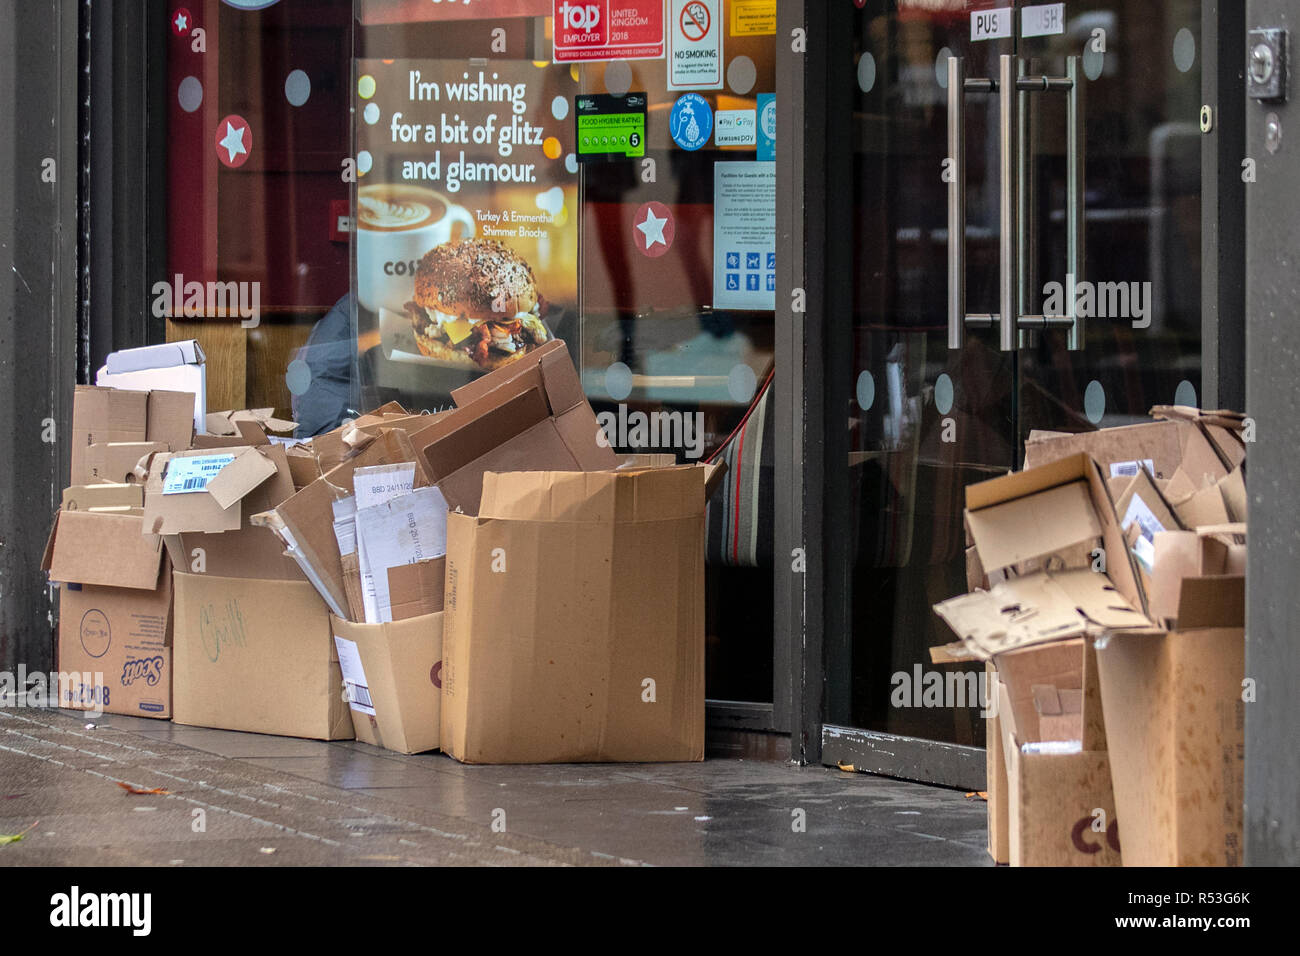 Coffee shop reycyling disposable cardboard containers, merchandise, sale, empty folded boxes, Preston, UK - Stock Image